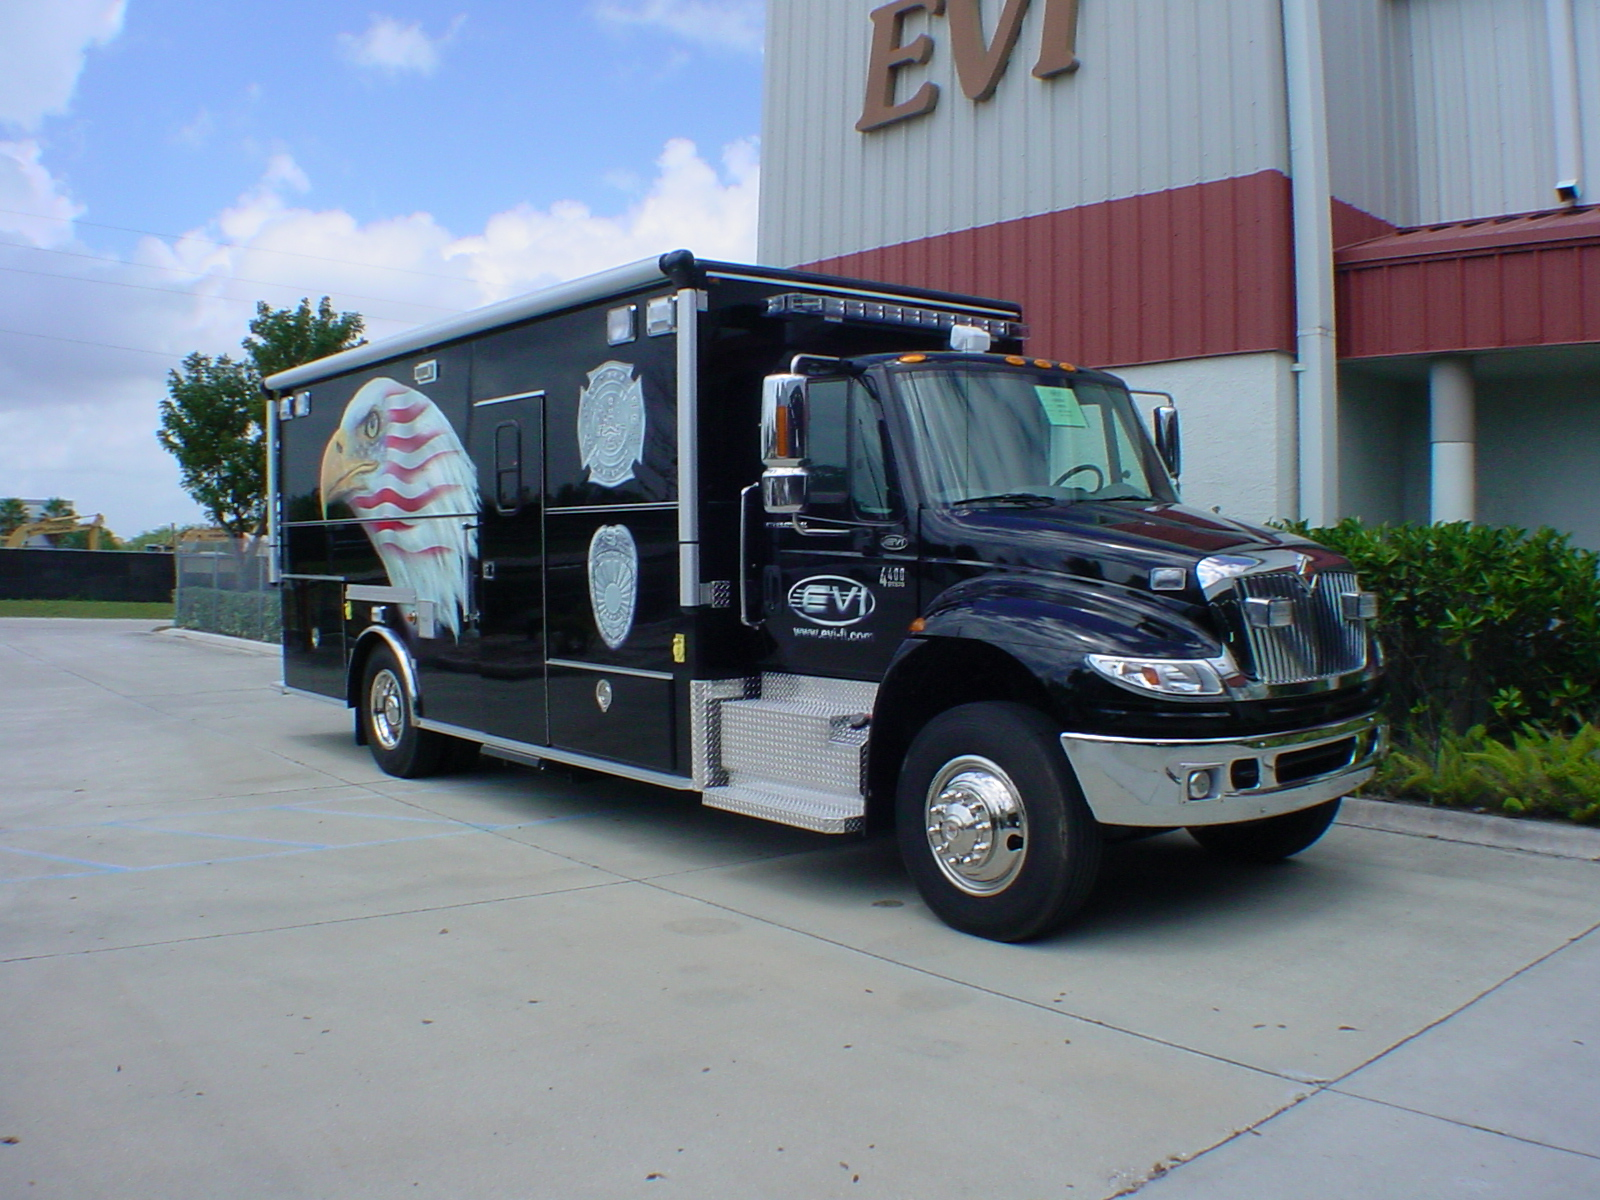 EVI 20-Ft. Law Enforcement Vehicle